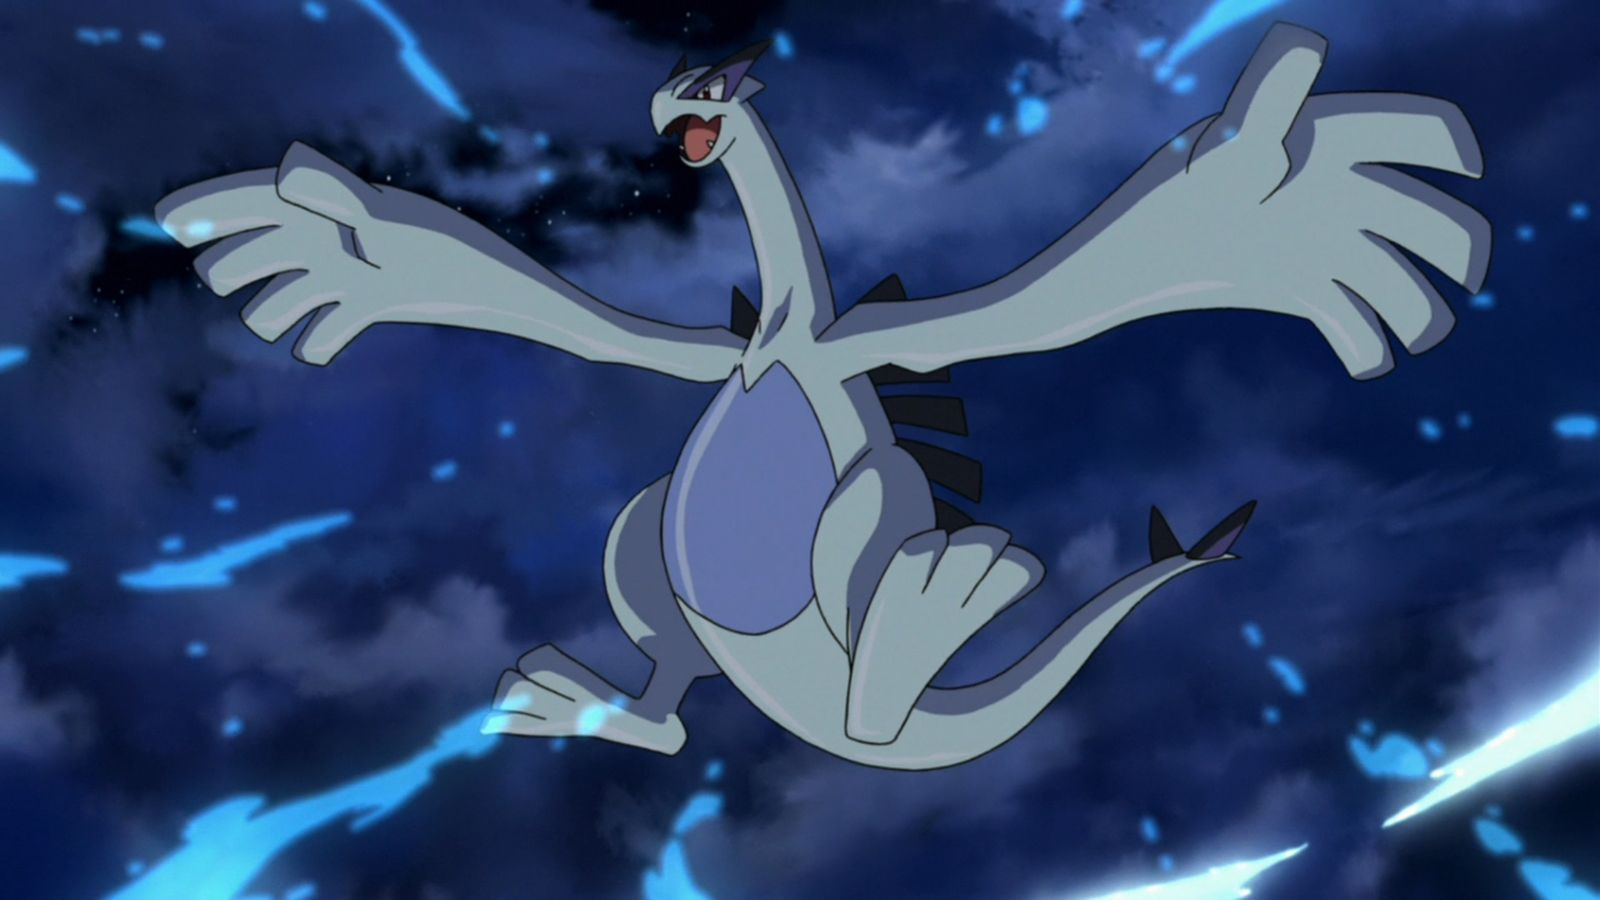 How to Defeat and Catch Lugia in Pokemon Go